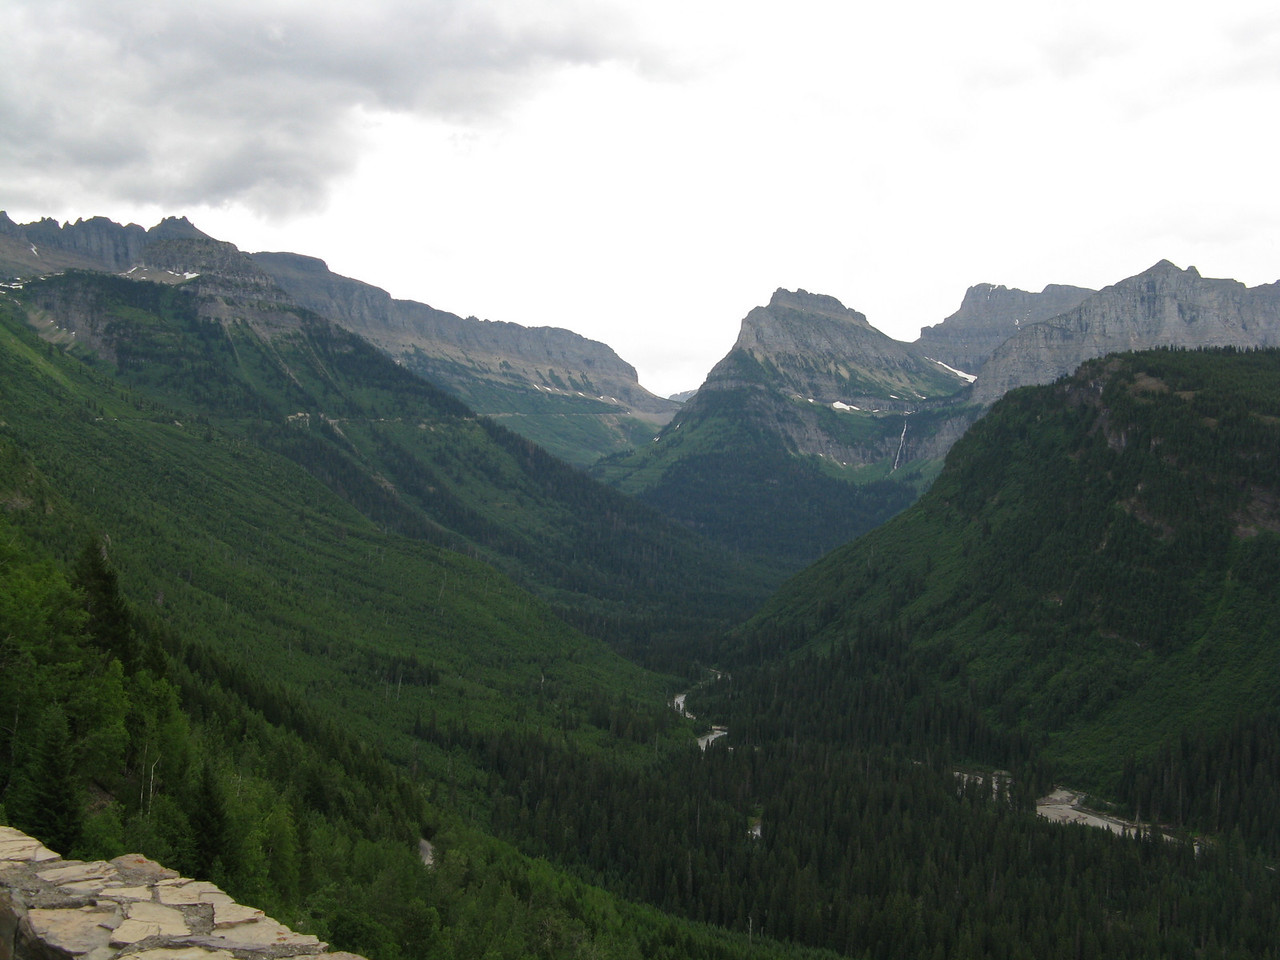 At about mile 23, we can see Logan Pass, which is the gap in the ridge in the distance.  The road runs along the mountainside on the left side of the picture.  These pictures drasticly understate the grandeur of the mountains in Glacier National Park.